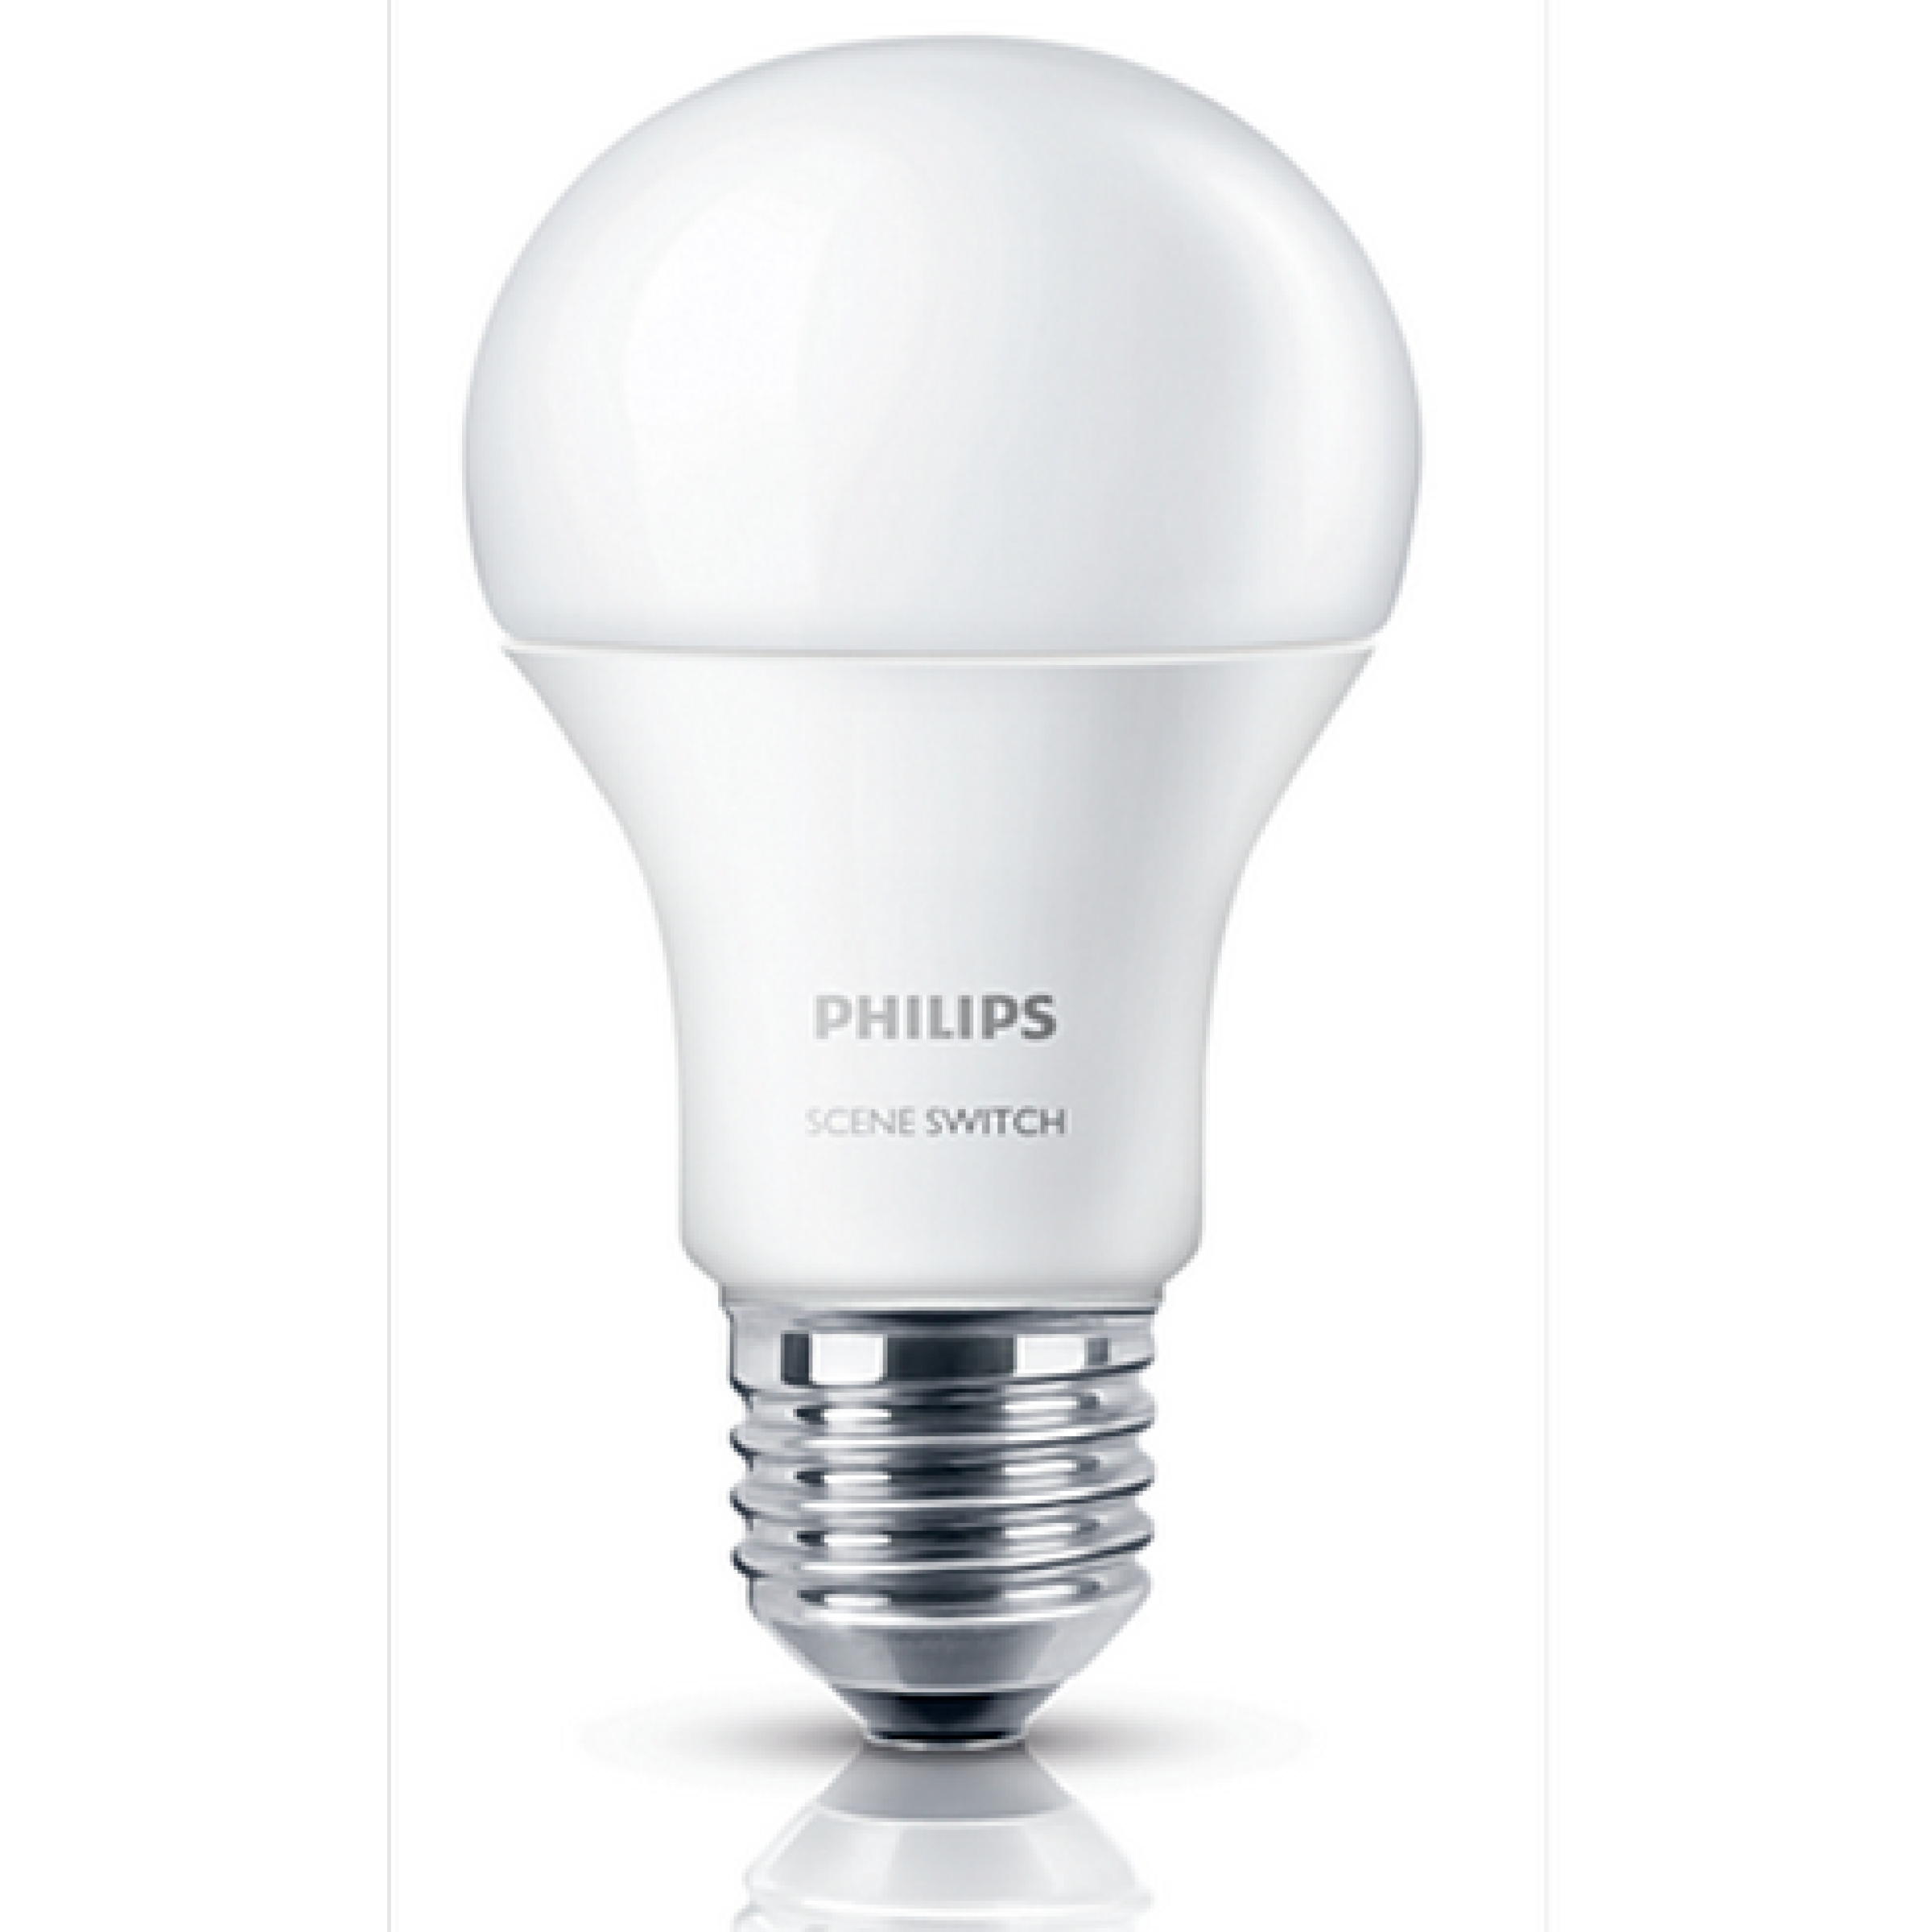 Philips Led Scene Switch Bulb 9 5w Duo Colour E27 6 Pack Luminancexpress